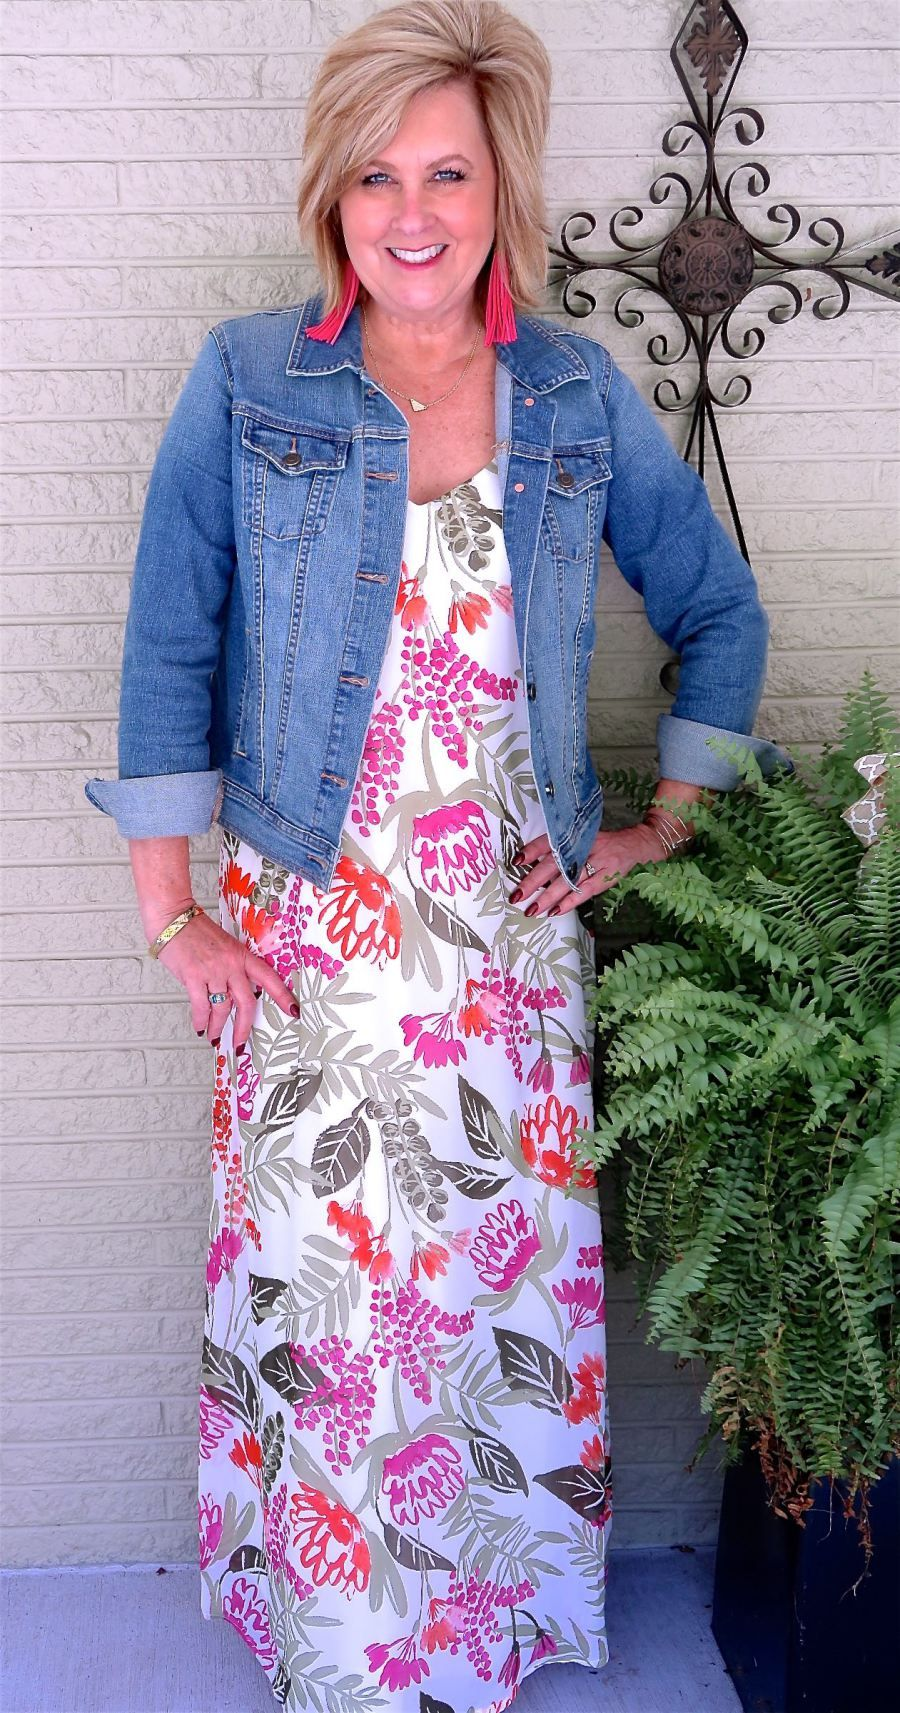 Denim Jacket And A Maxi Dress 50 Is Not Old Maxi Dresses Fall Fall Transition Outfits Womens Fashion Casual Fall [ 1713 x 900 Pixel ]